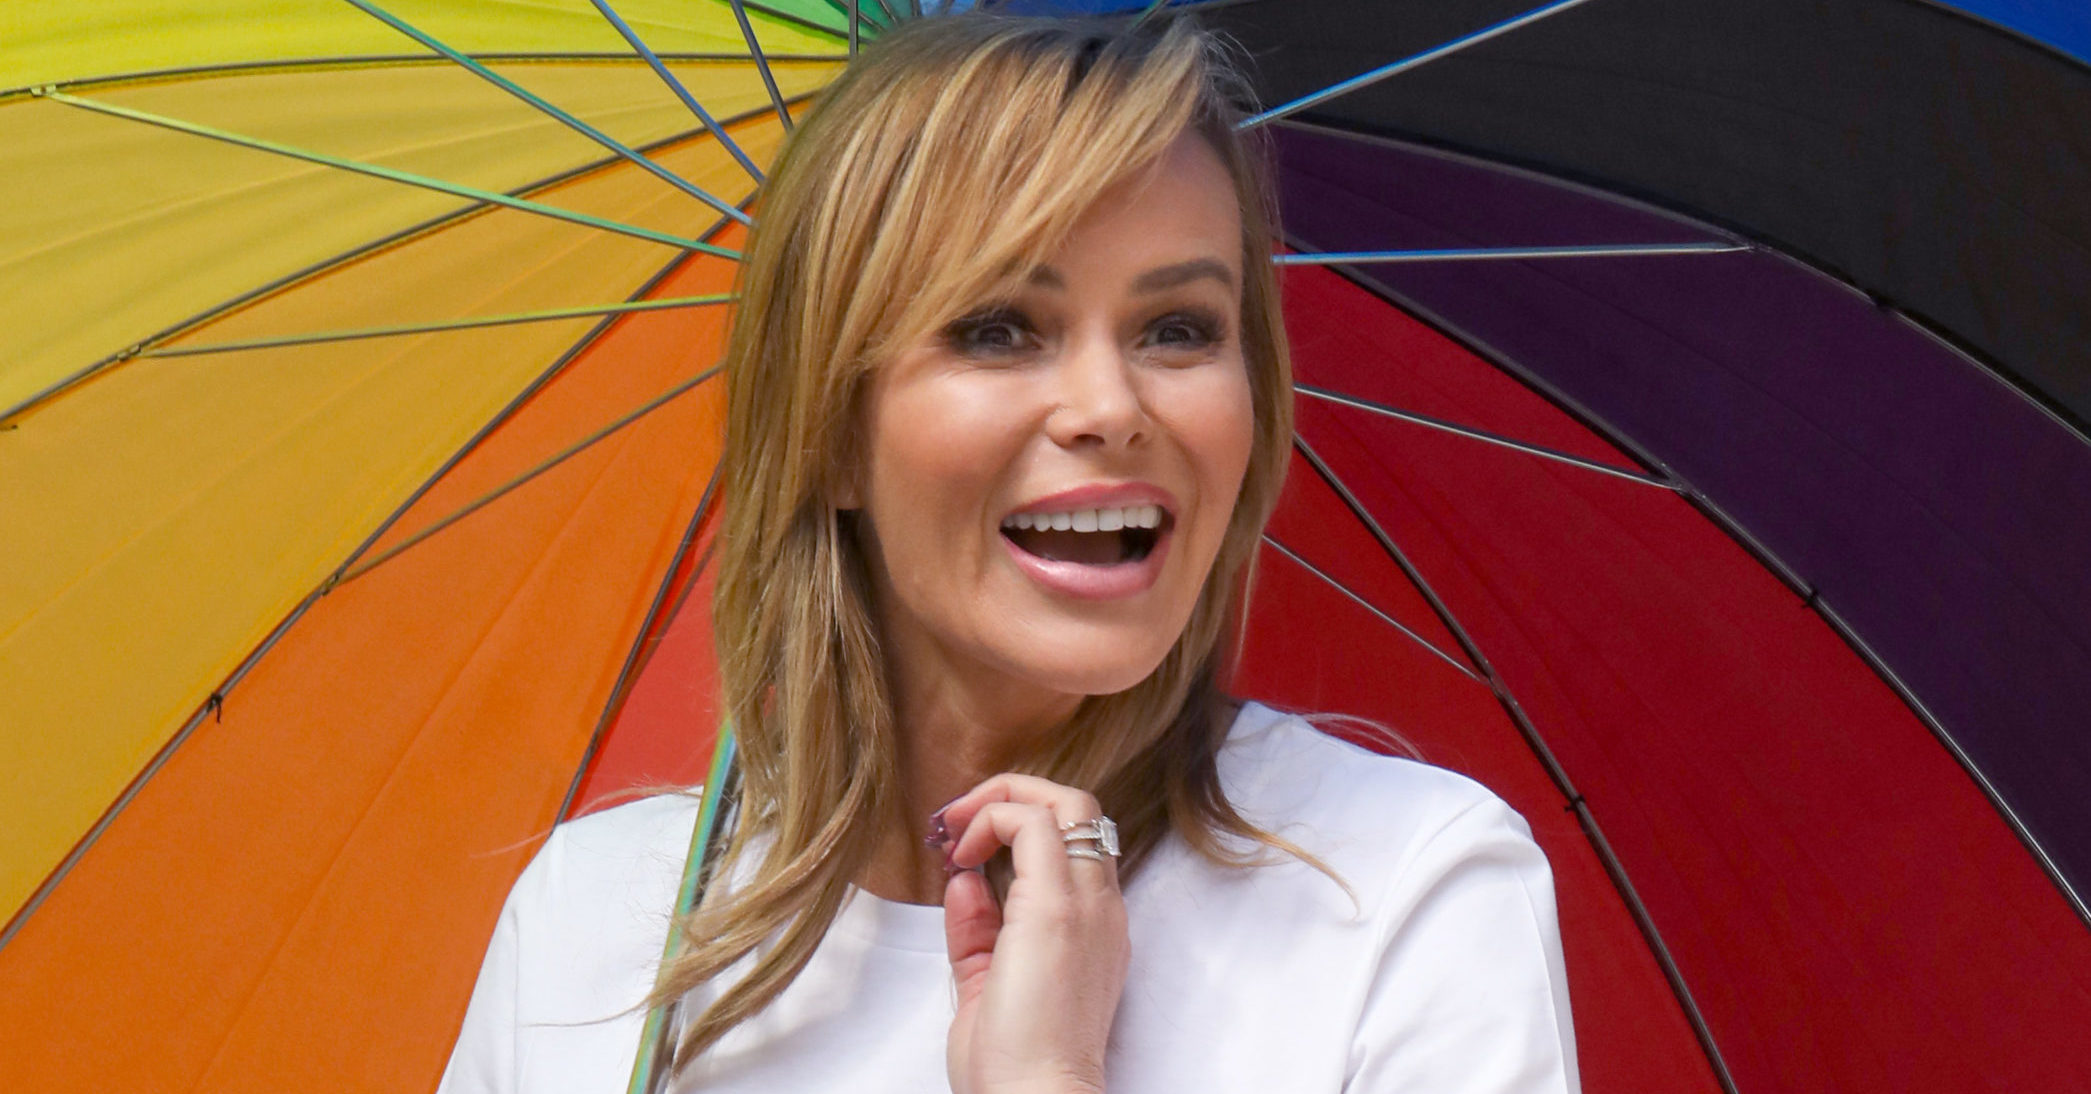 Amanda Holden fans in tears as she reveals music video for Over The Rainbow NHS charity single